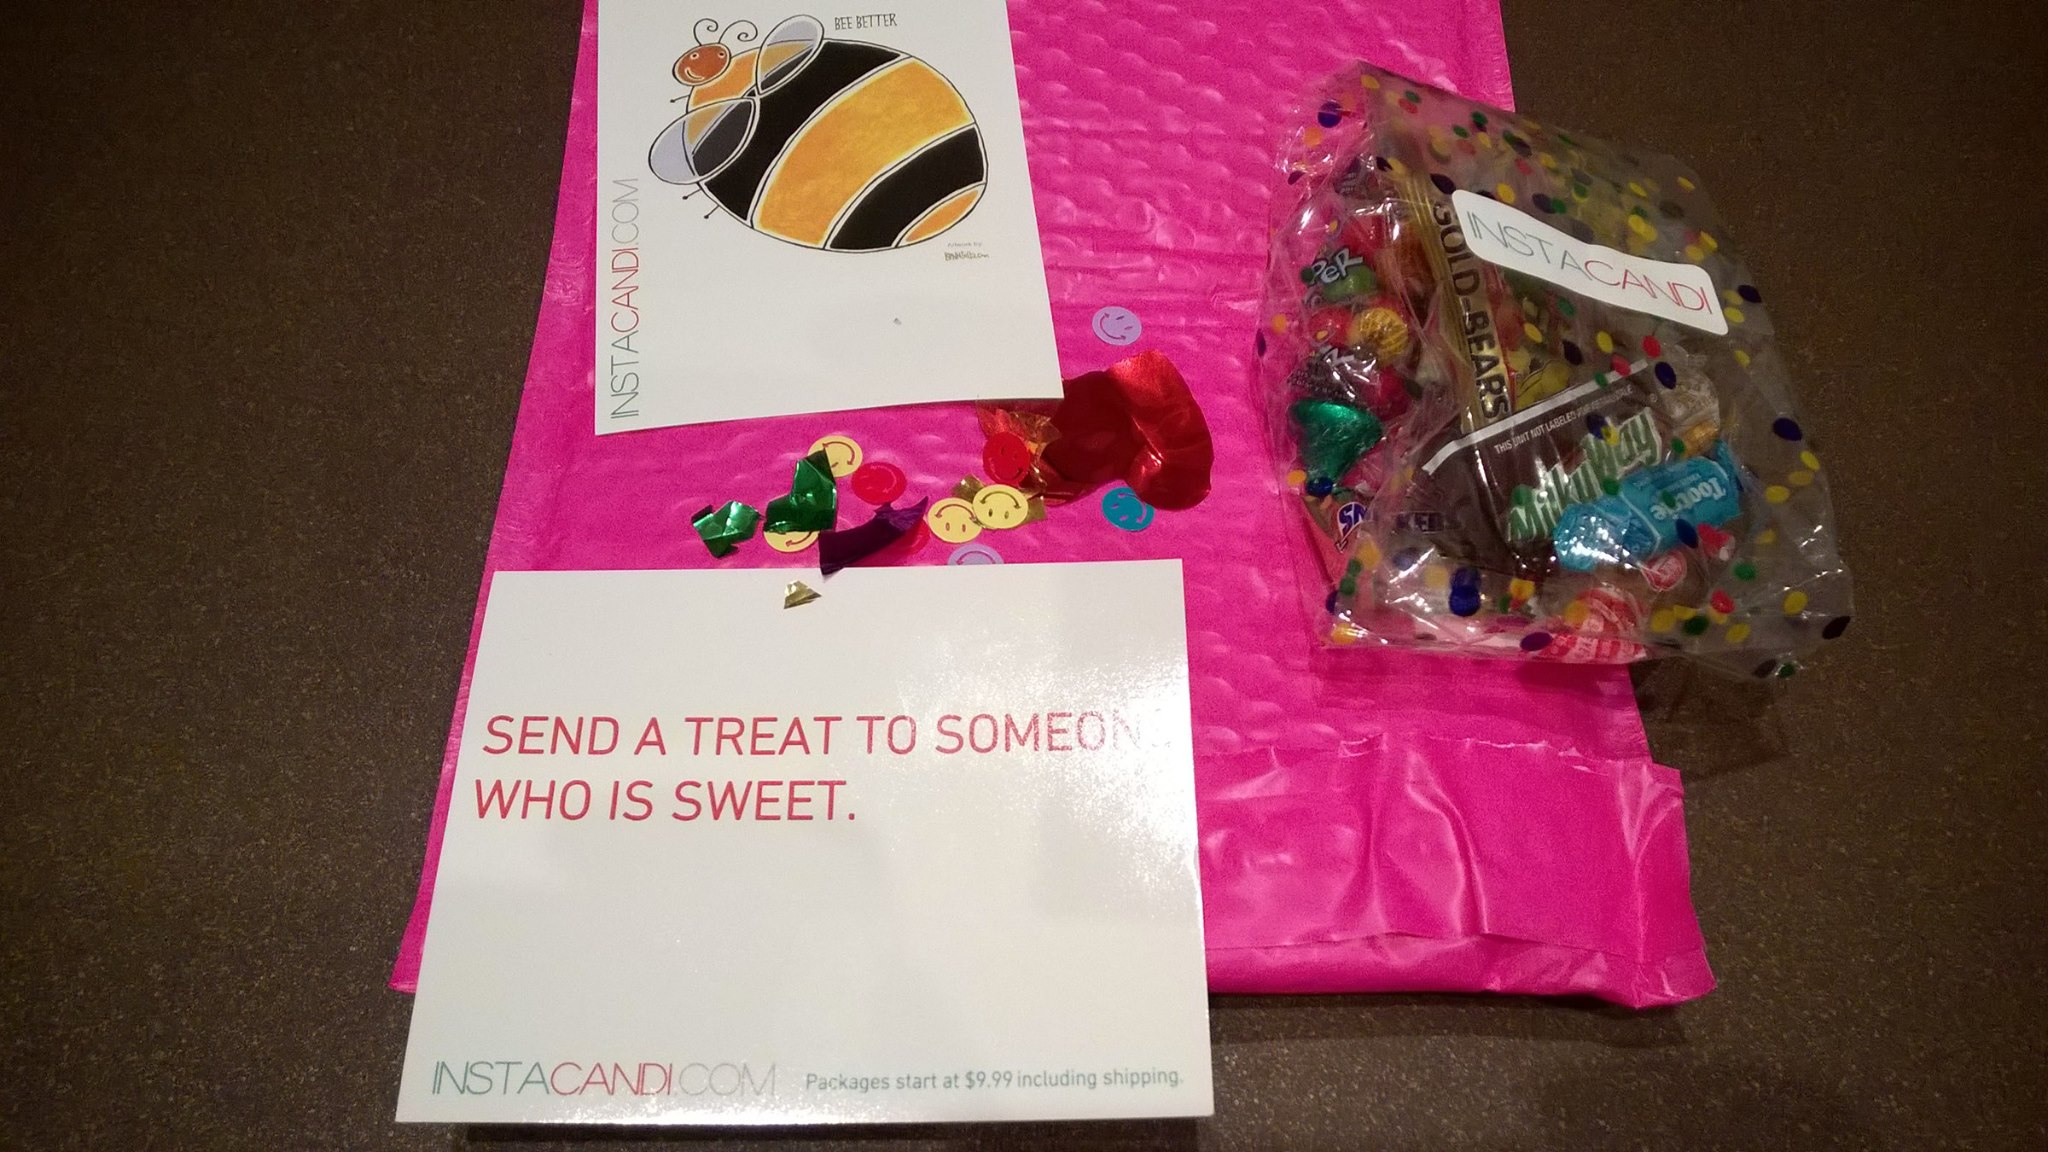 INSTACANDI ~ Send a treat to someone who is sweet